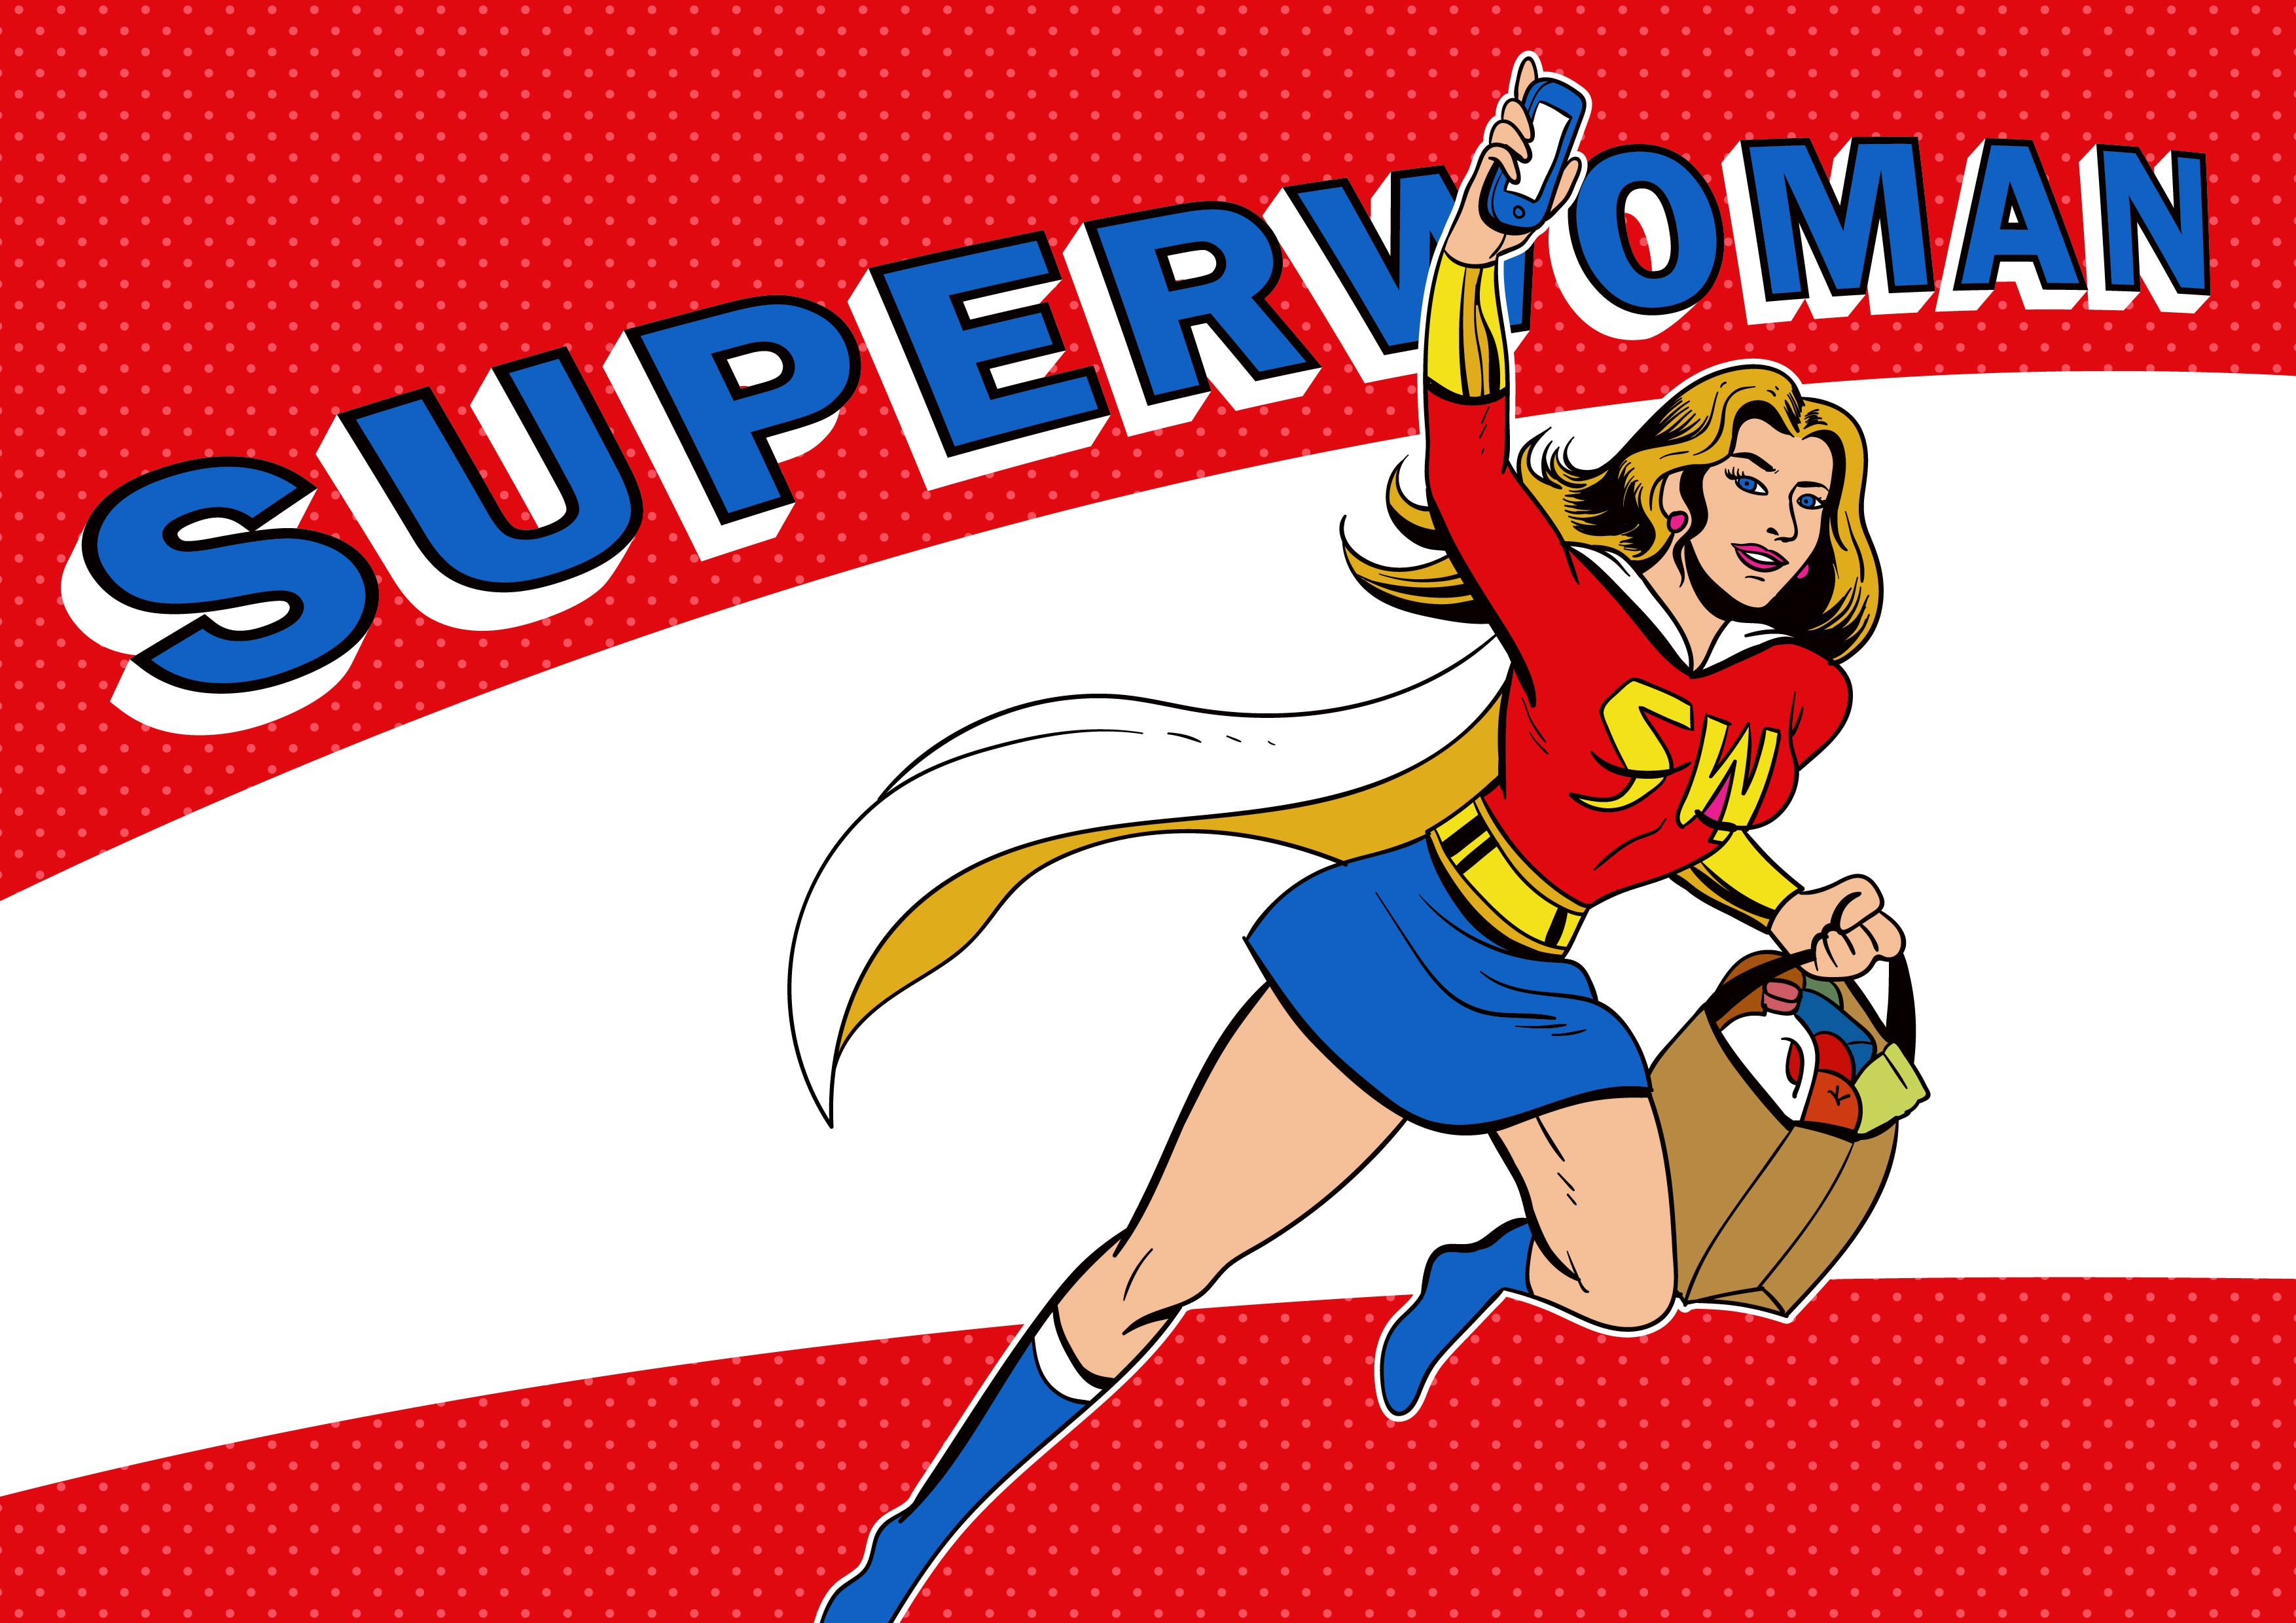 This is where superwoman lives 8